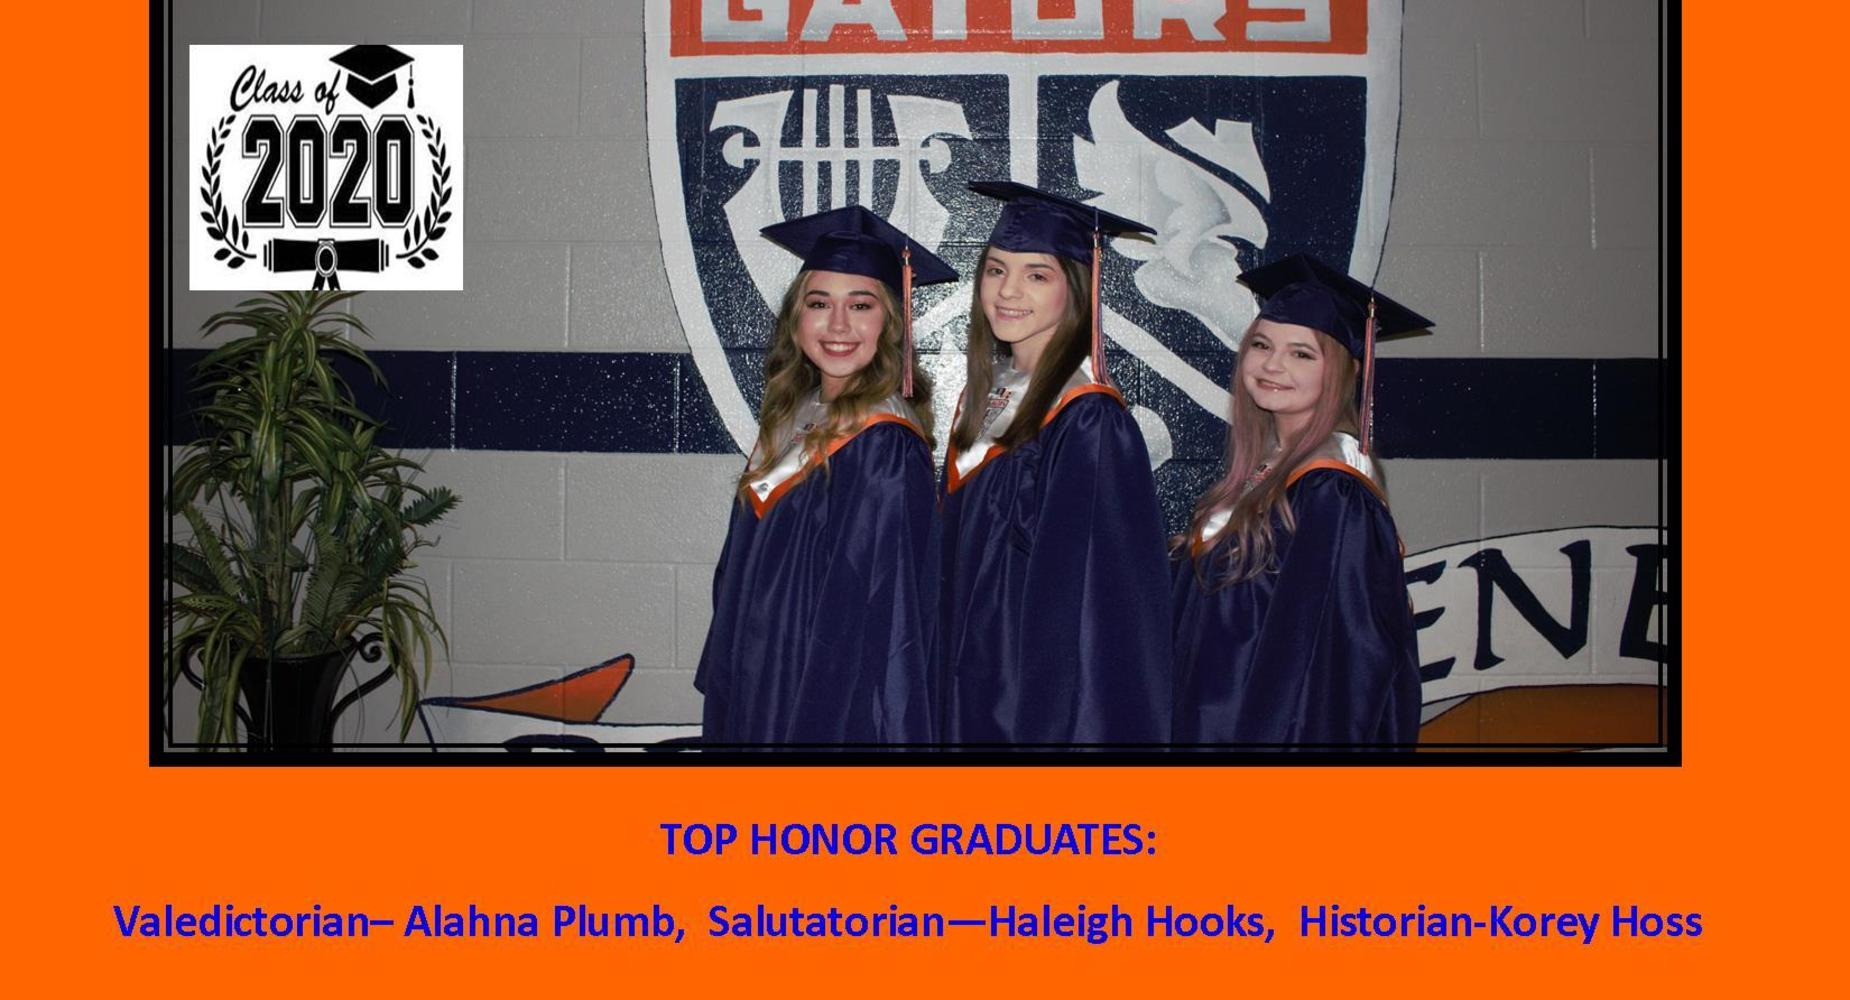 Top Honor Graduates 2020 - Alahna Plumb, Haleigh Hooks and Korey Hoss